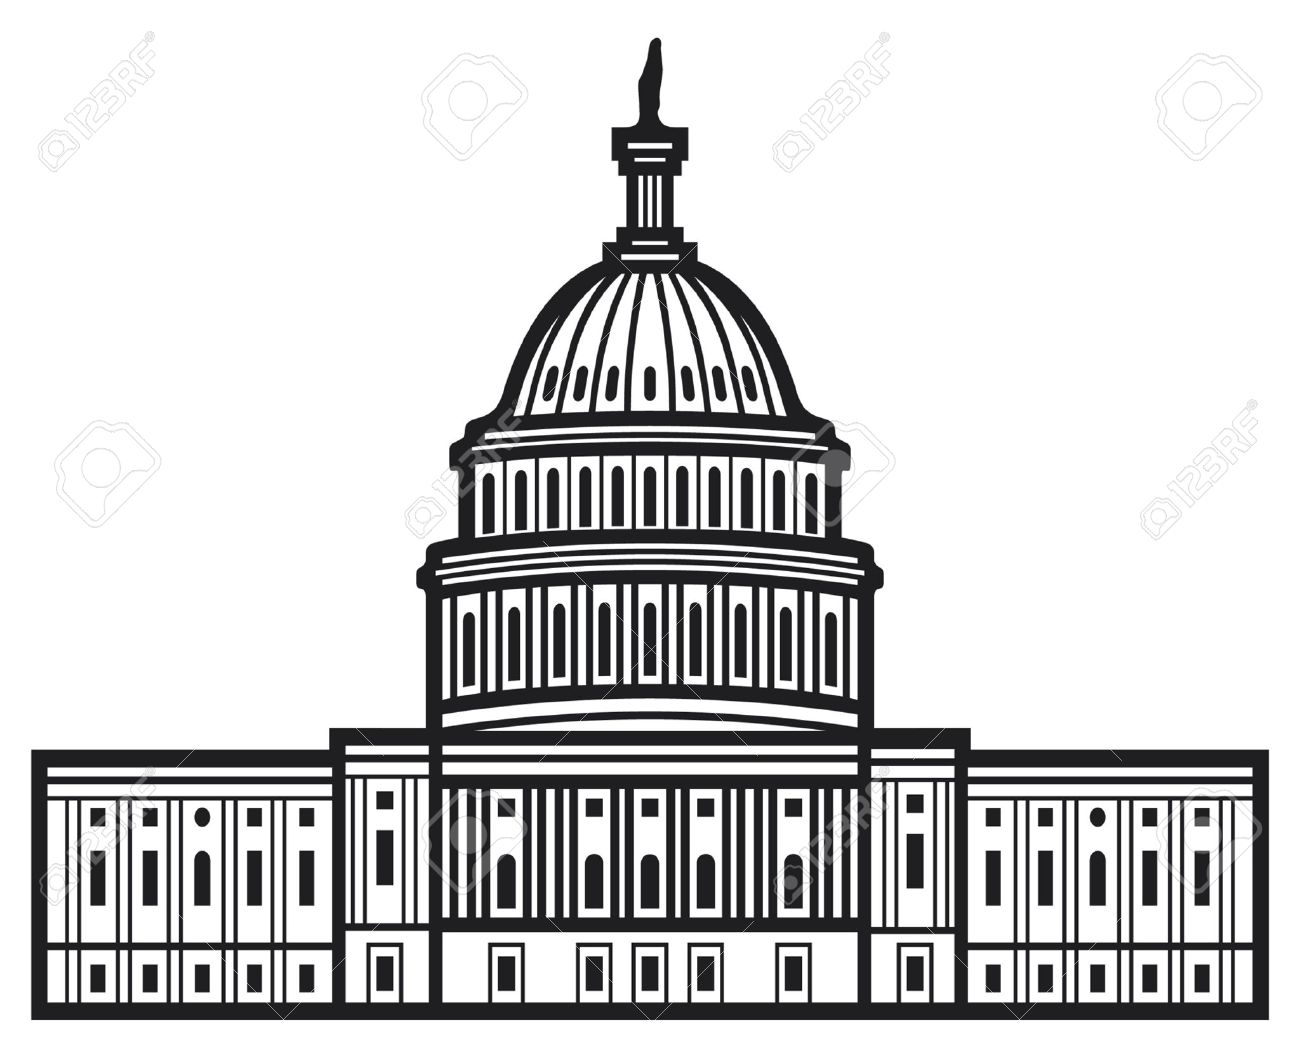 Congress building clipart.